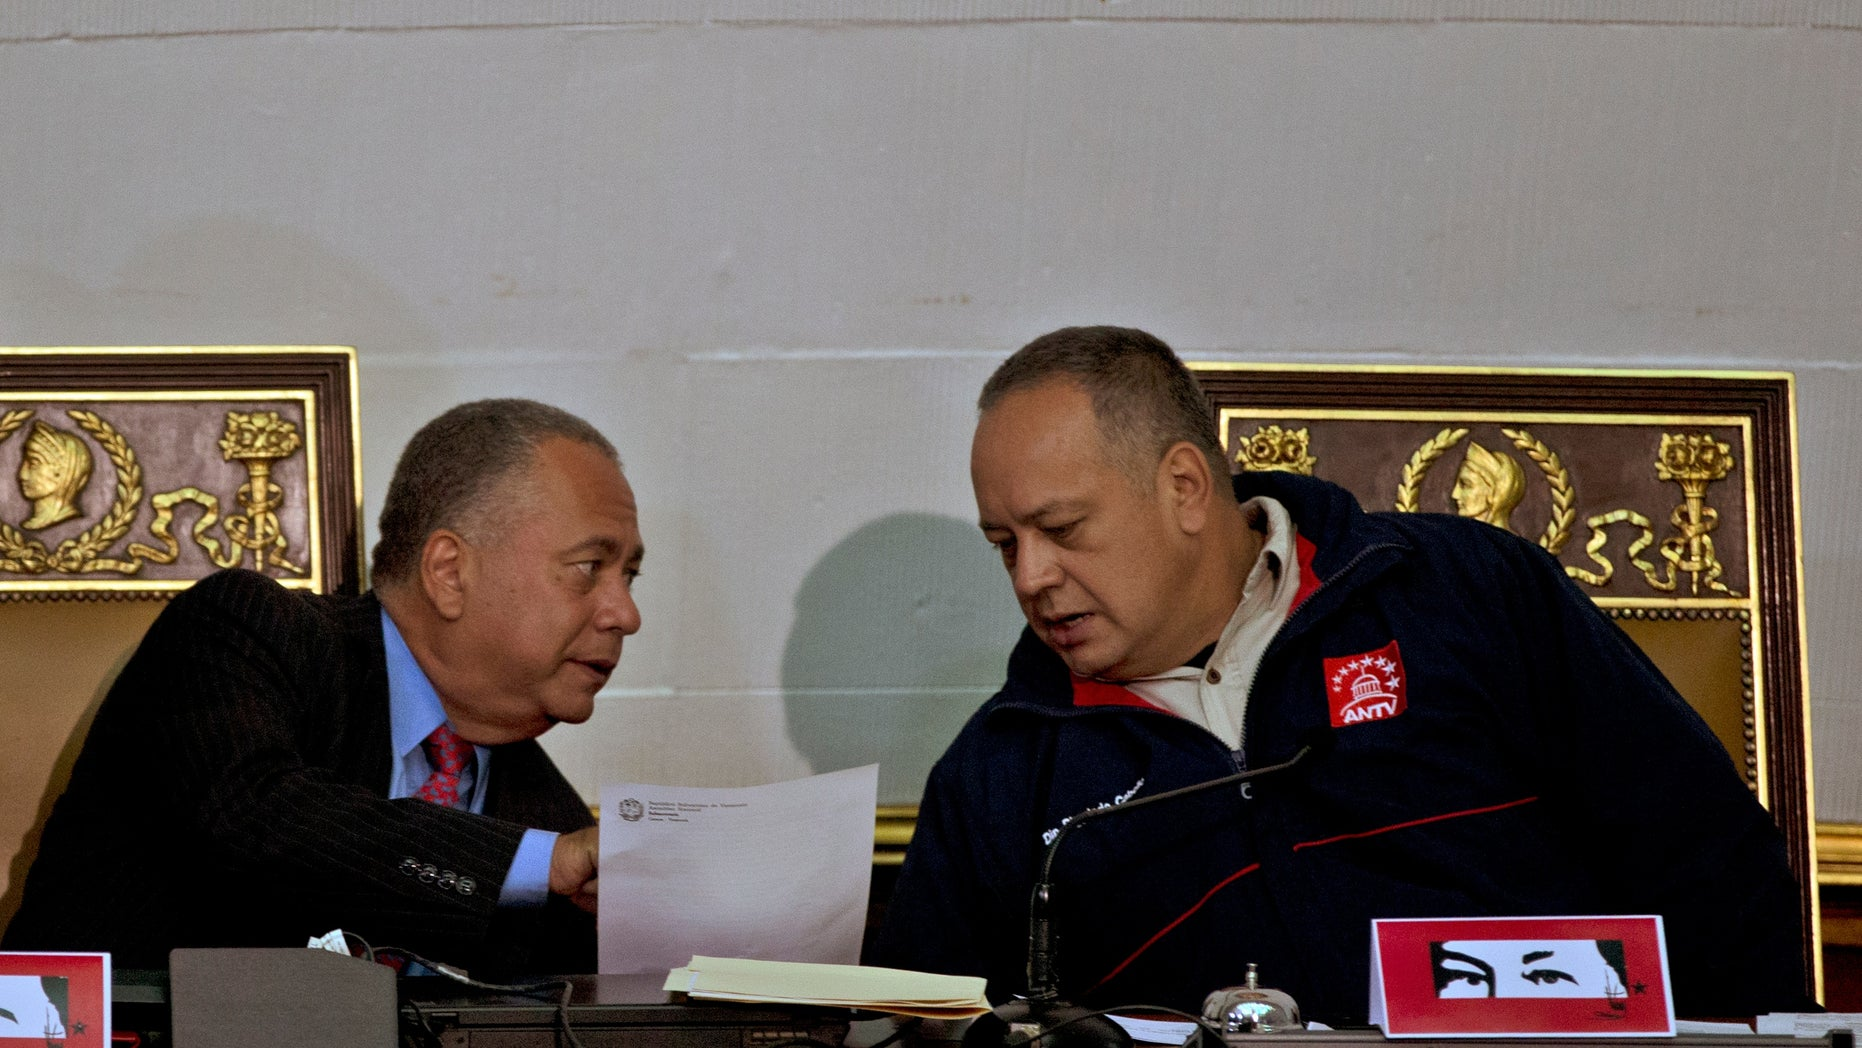 National Assembly's President Diosdado Cabello and first Vice President Elvis Amoroso.